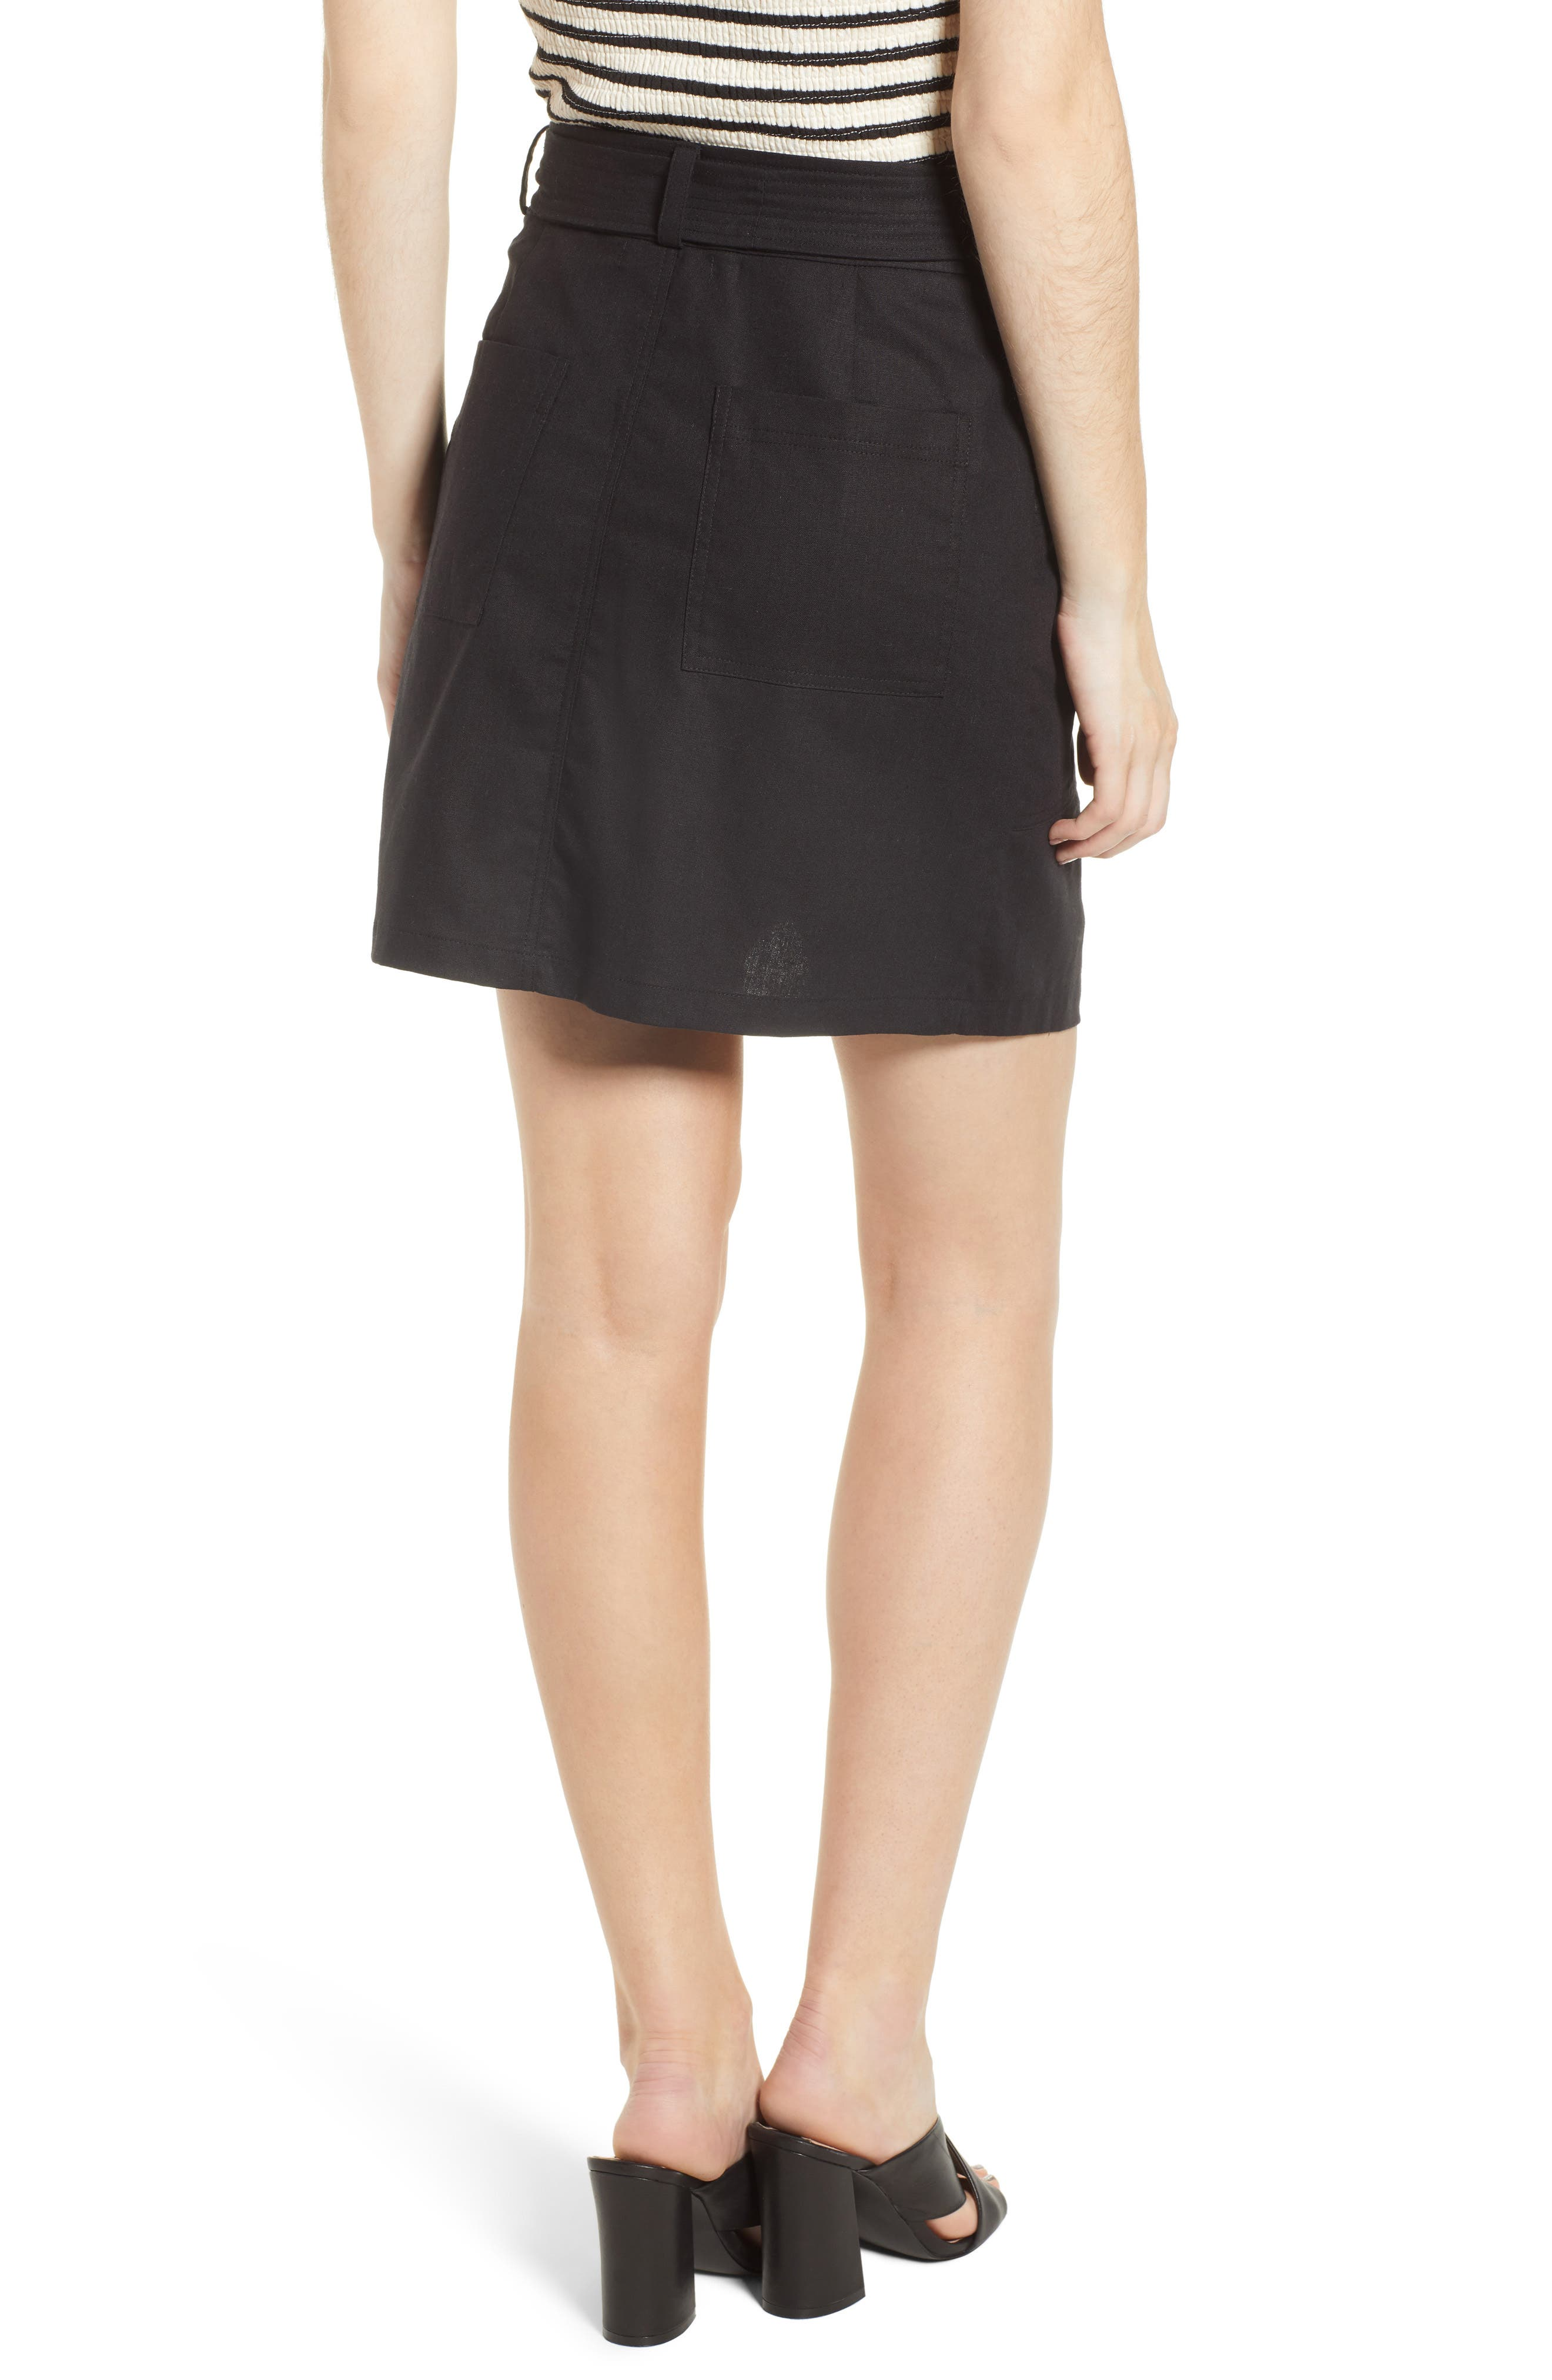 BISHOP + YOUNG,                             Tie Front Wrap Style Skirt,                             Alternate thumbnail 2, color,                             001